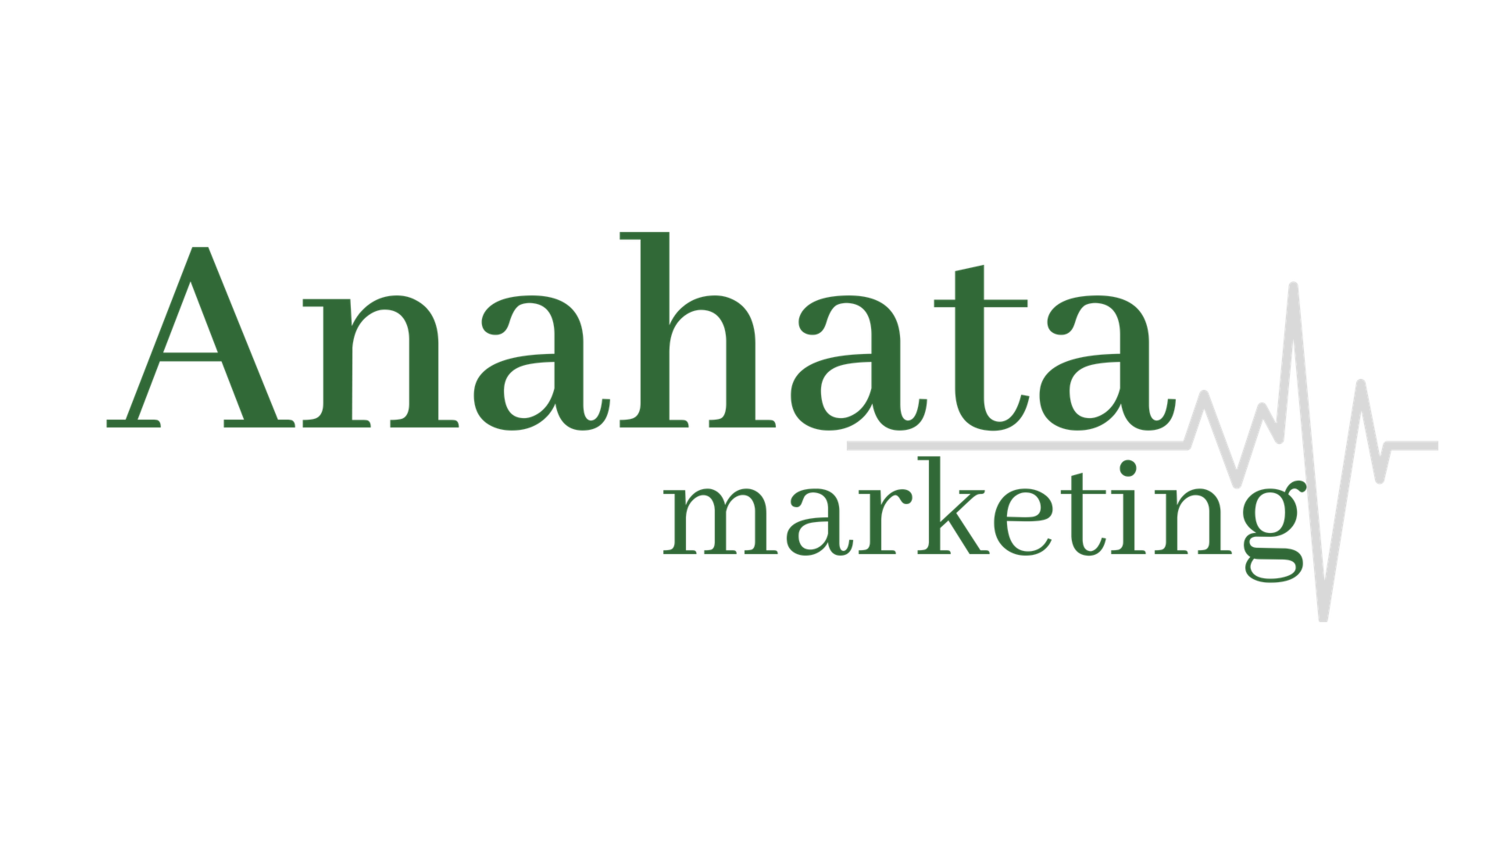 Anahata Marketing